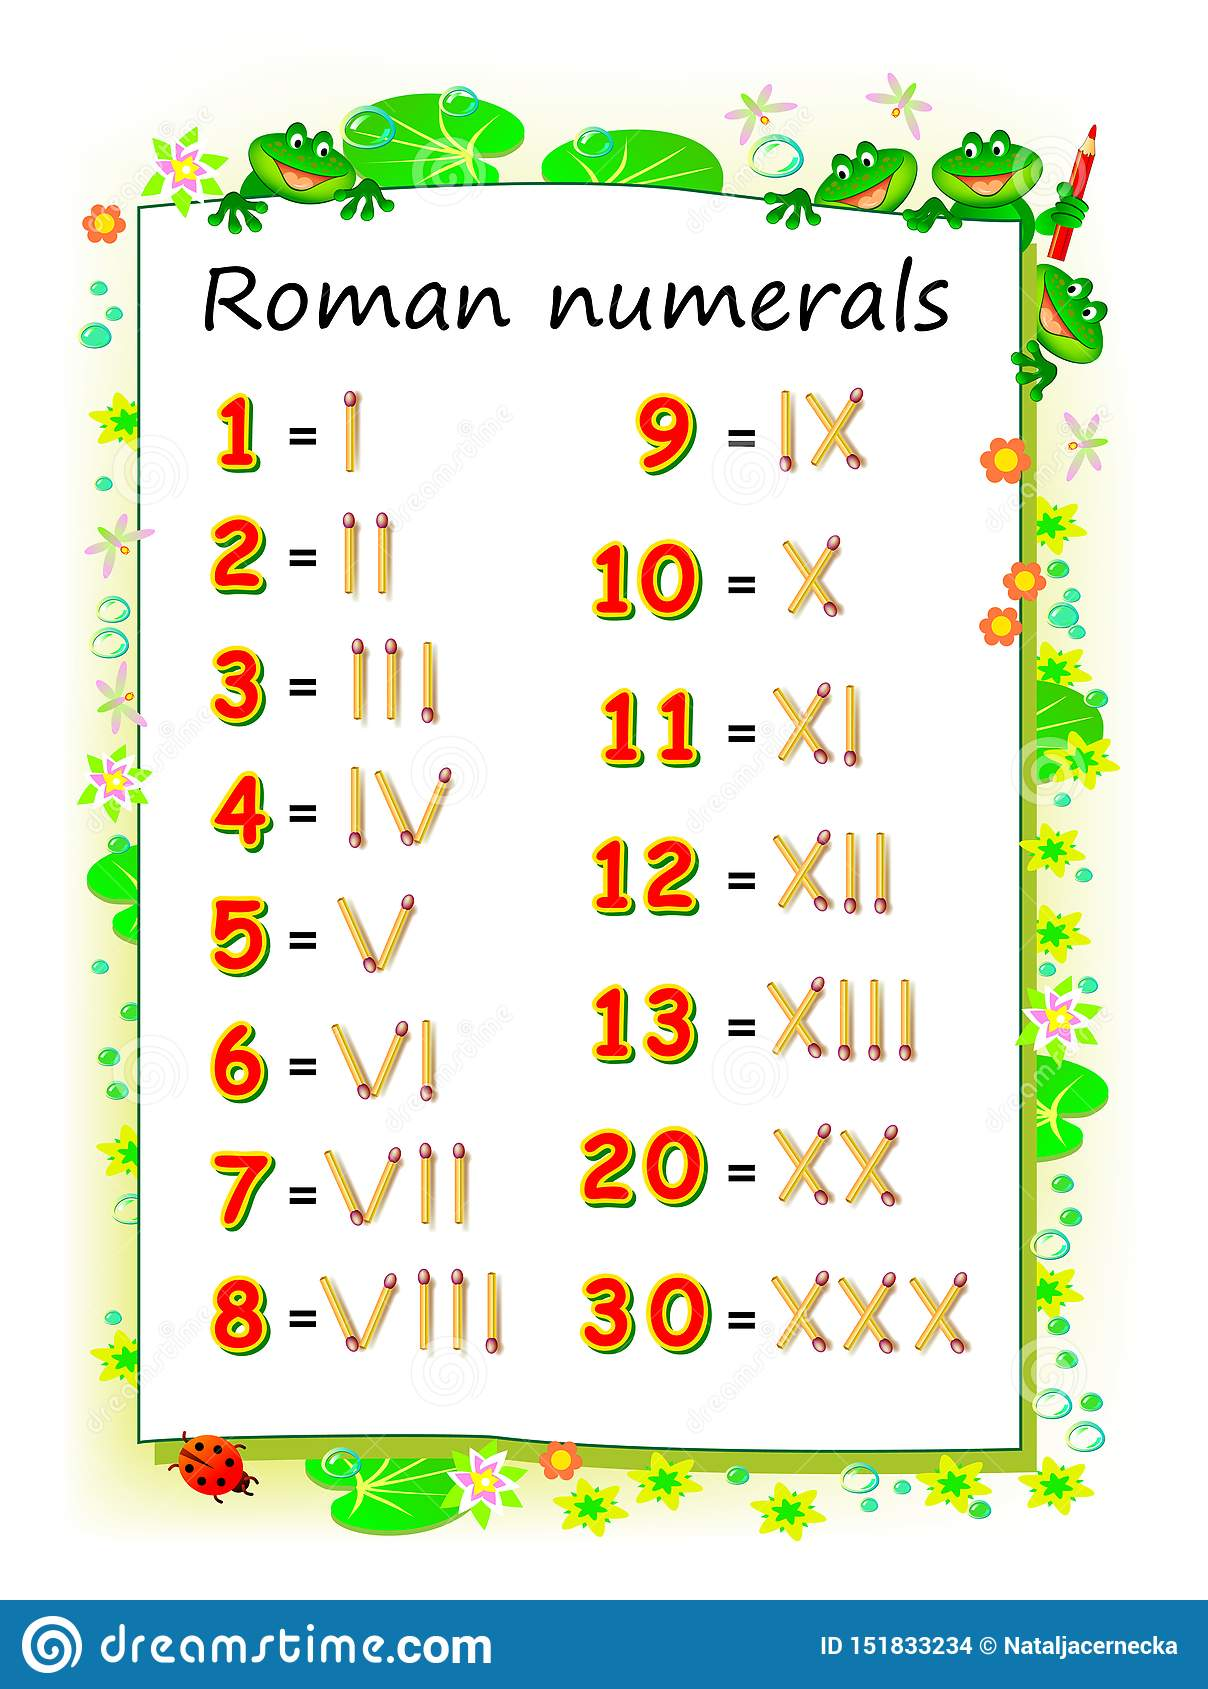 hight resolution of Roman Numerals Worksheets For Teachers Free   Printable Worksheets and  Activities for Teachers